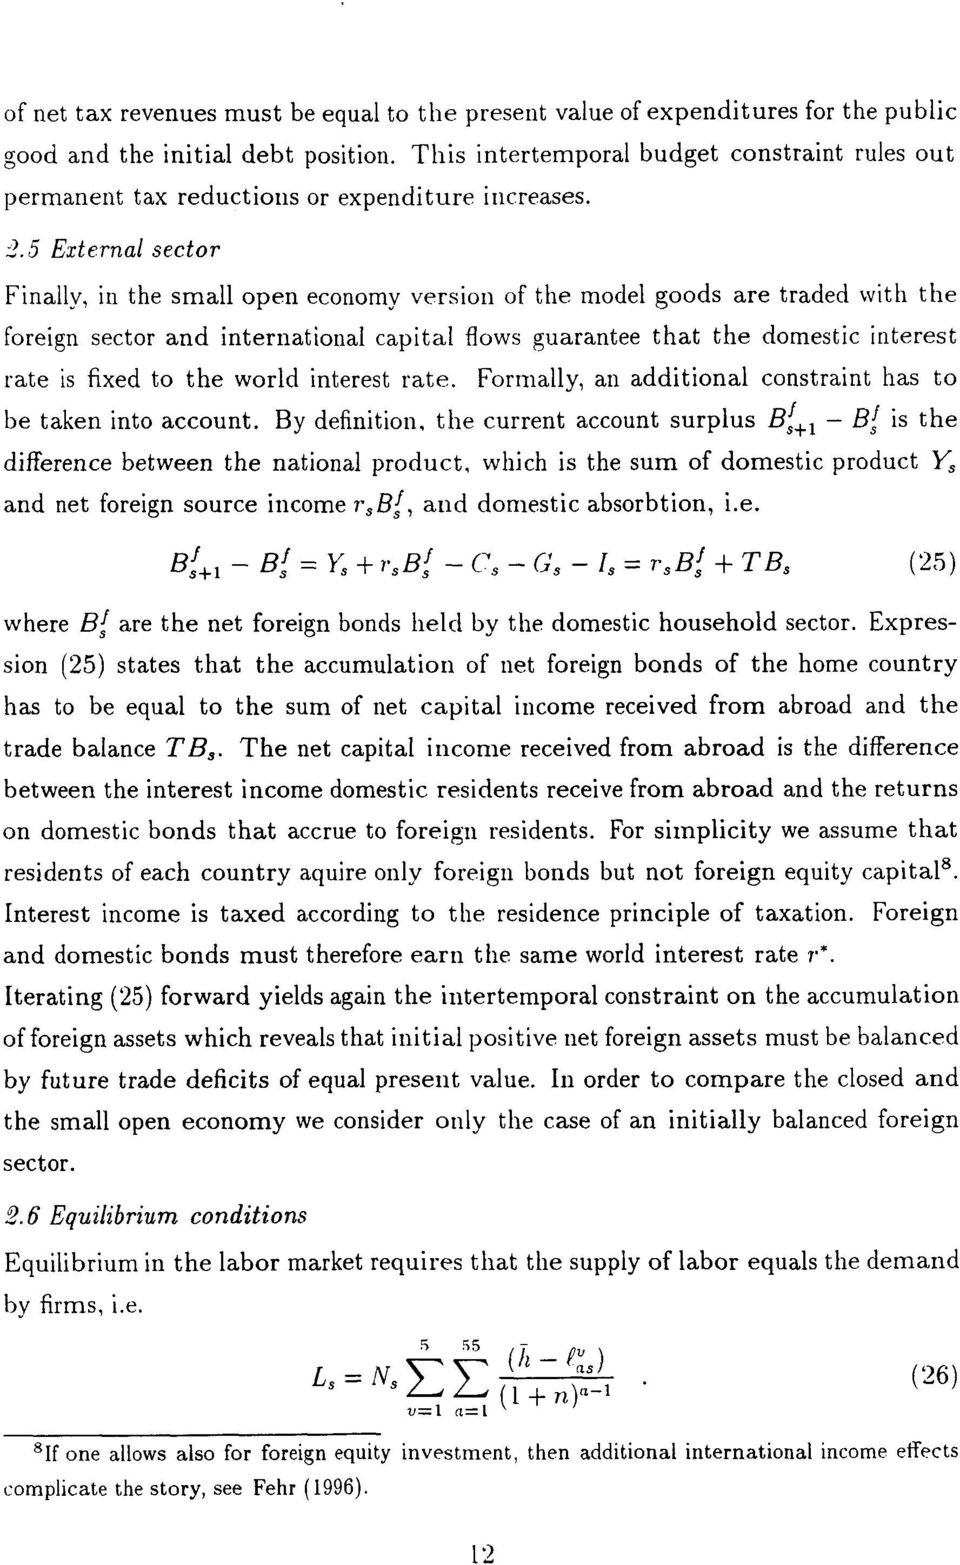 5 External sector Finally, in the small open economy version of the model goods are traded with the Foreign sector and international capital flows guarantee that the domestic interest rate is fixed